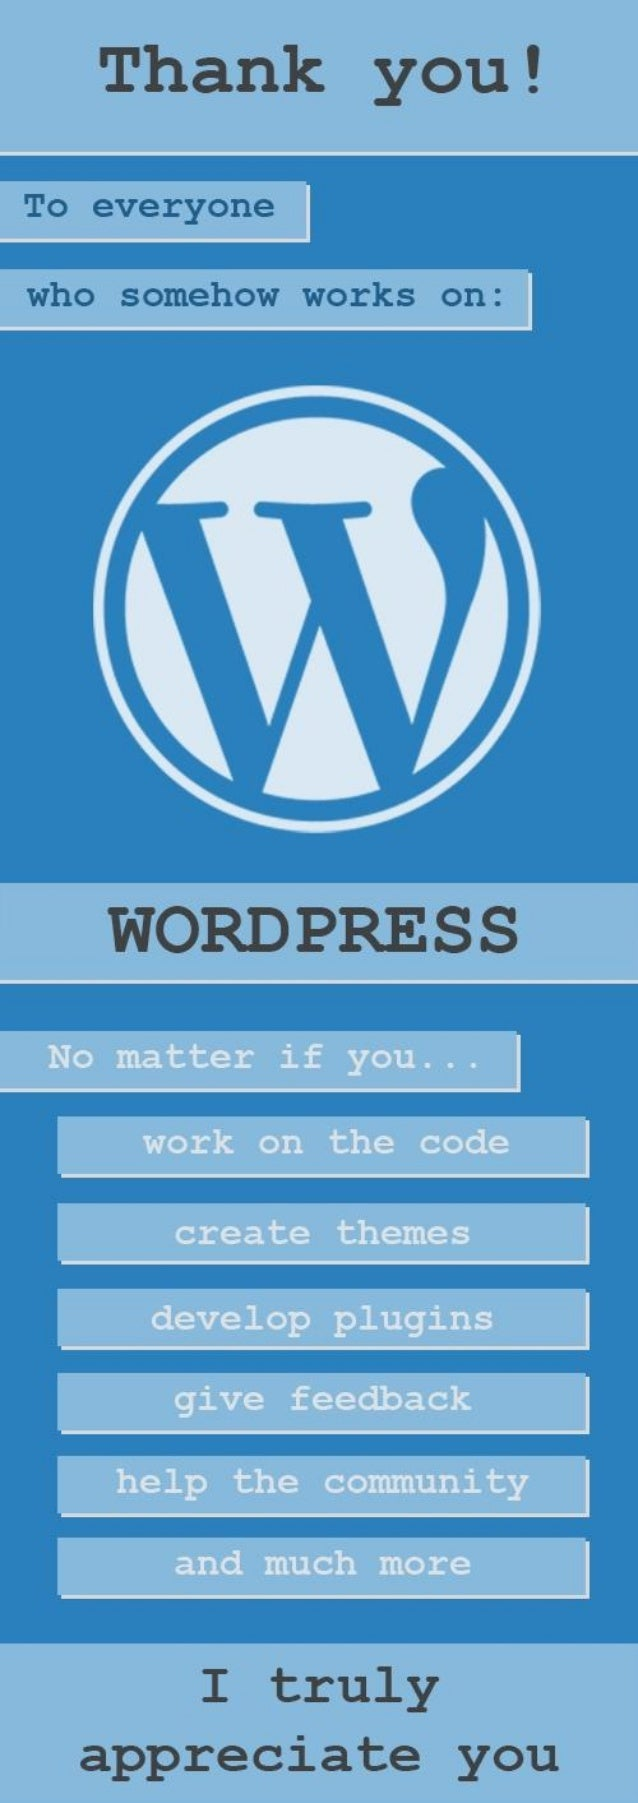 Thank you!   To everynne  whu samehow works an:   WORDPRESS  I truly appreciate you